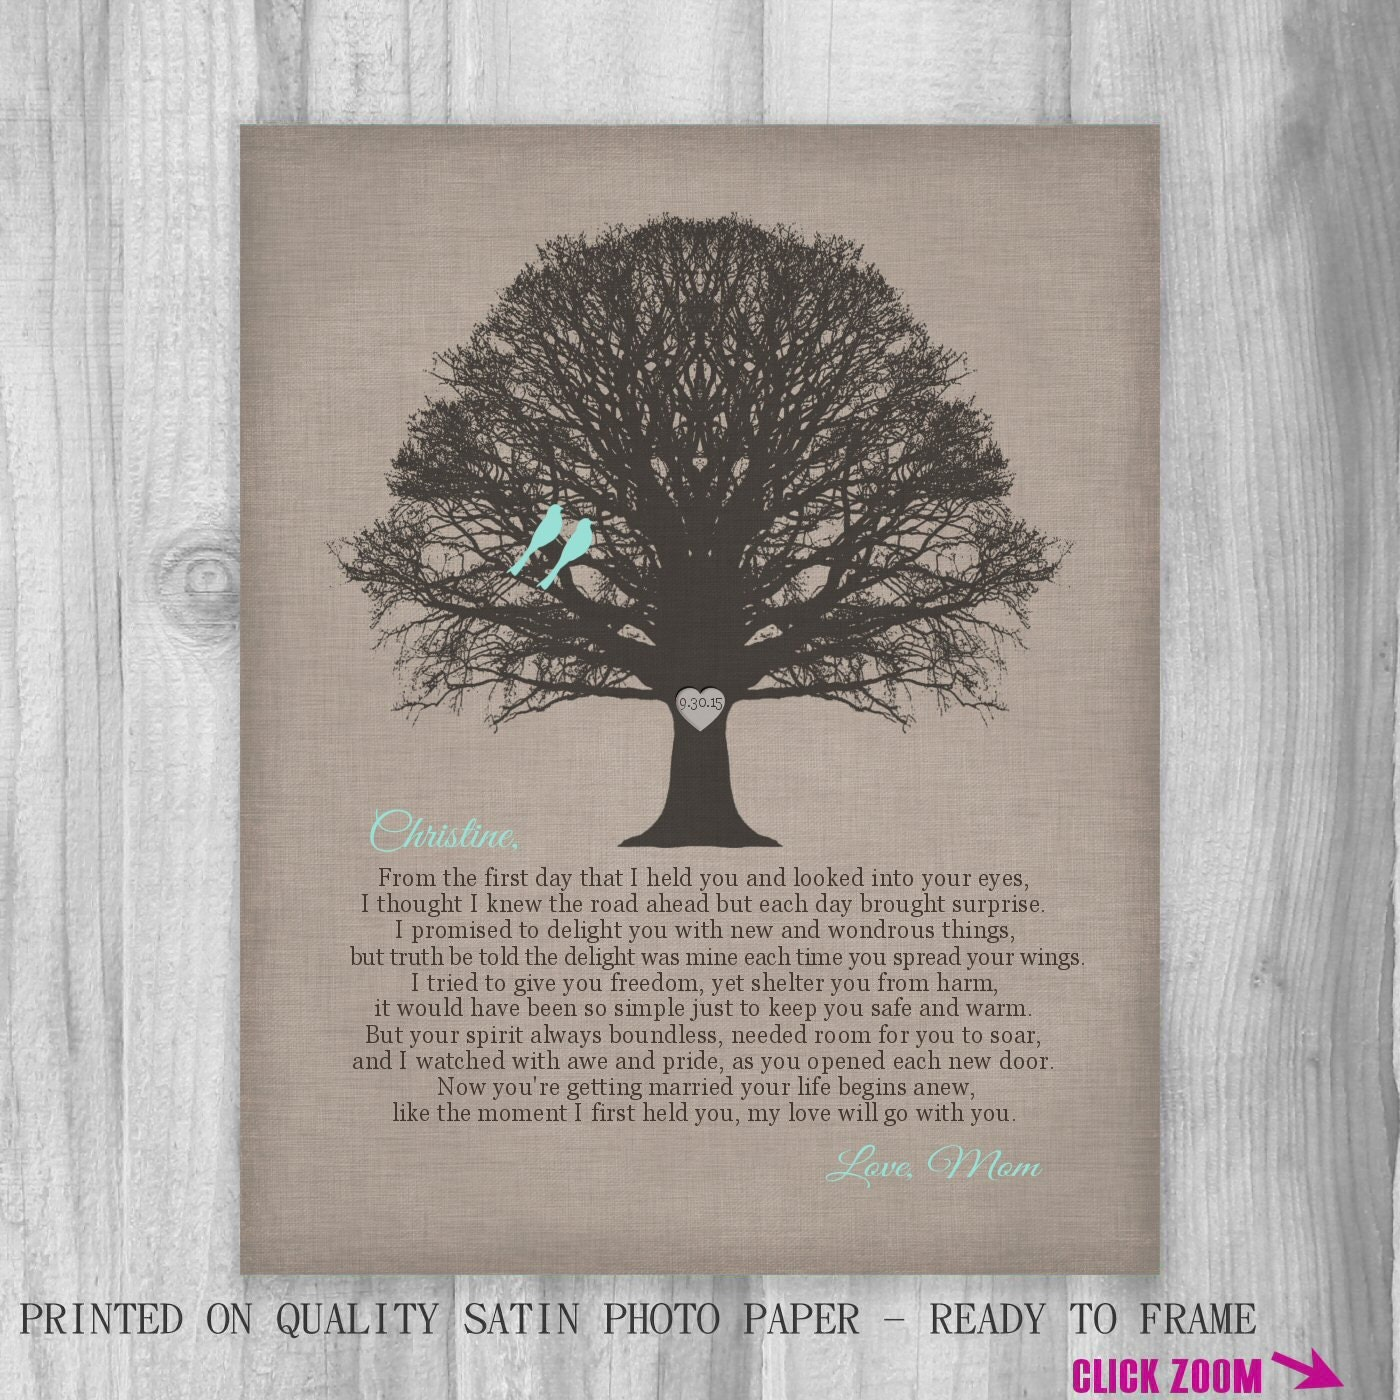 A Wedding Gift For My Daughter : Gift for Daughter on Wedding Day from Mom Wedding Day Gift for